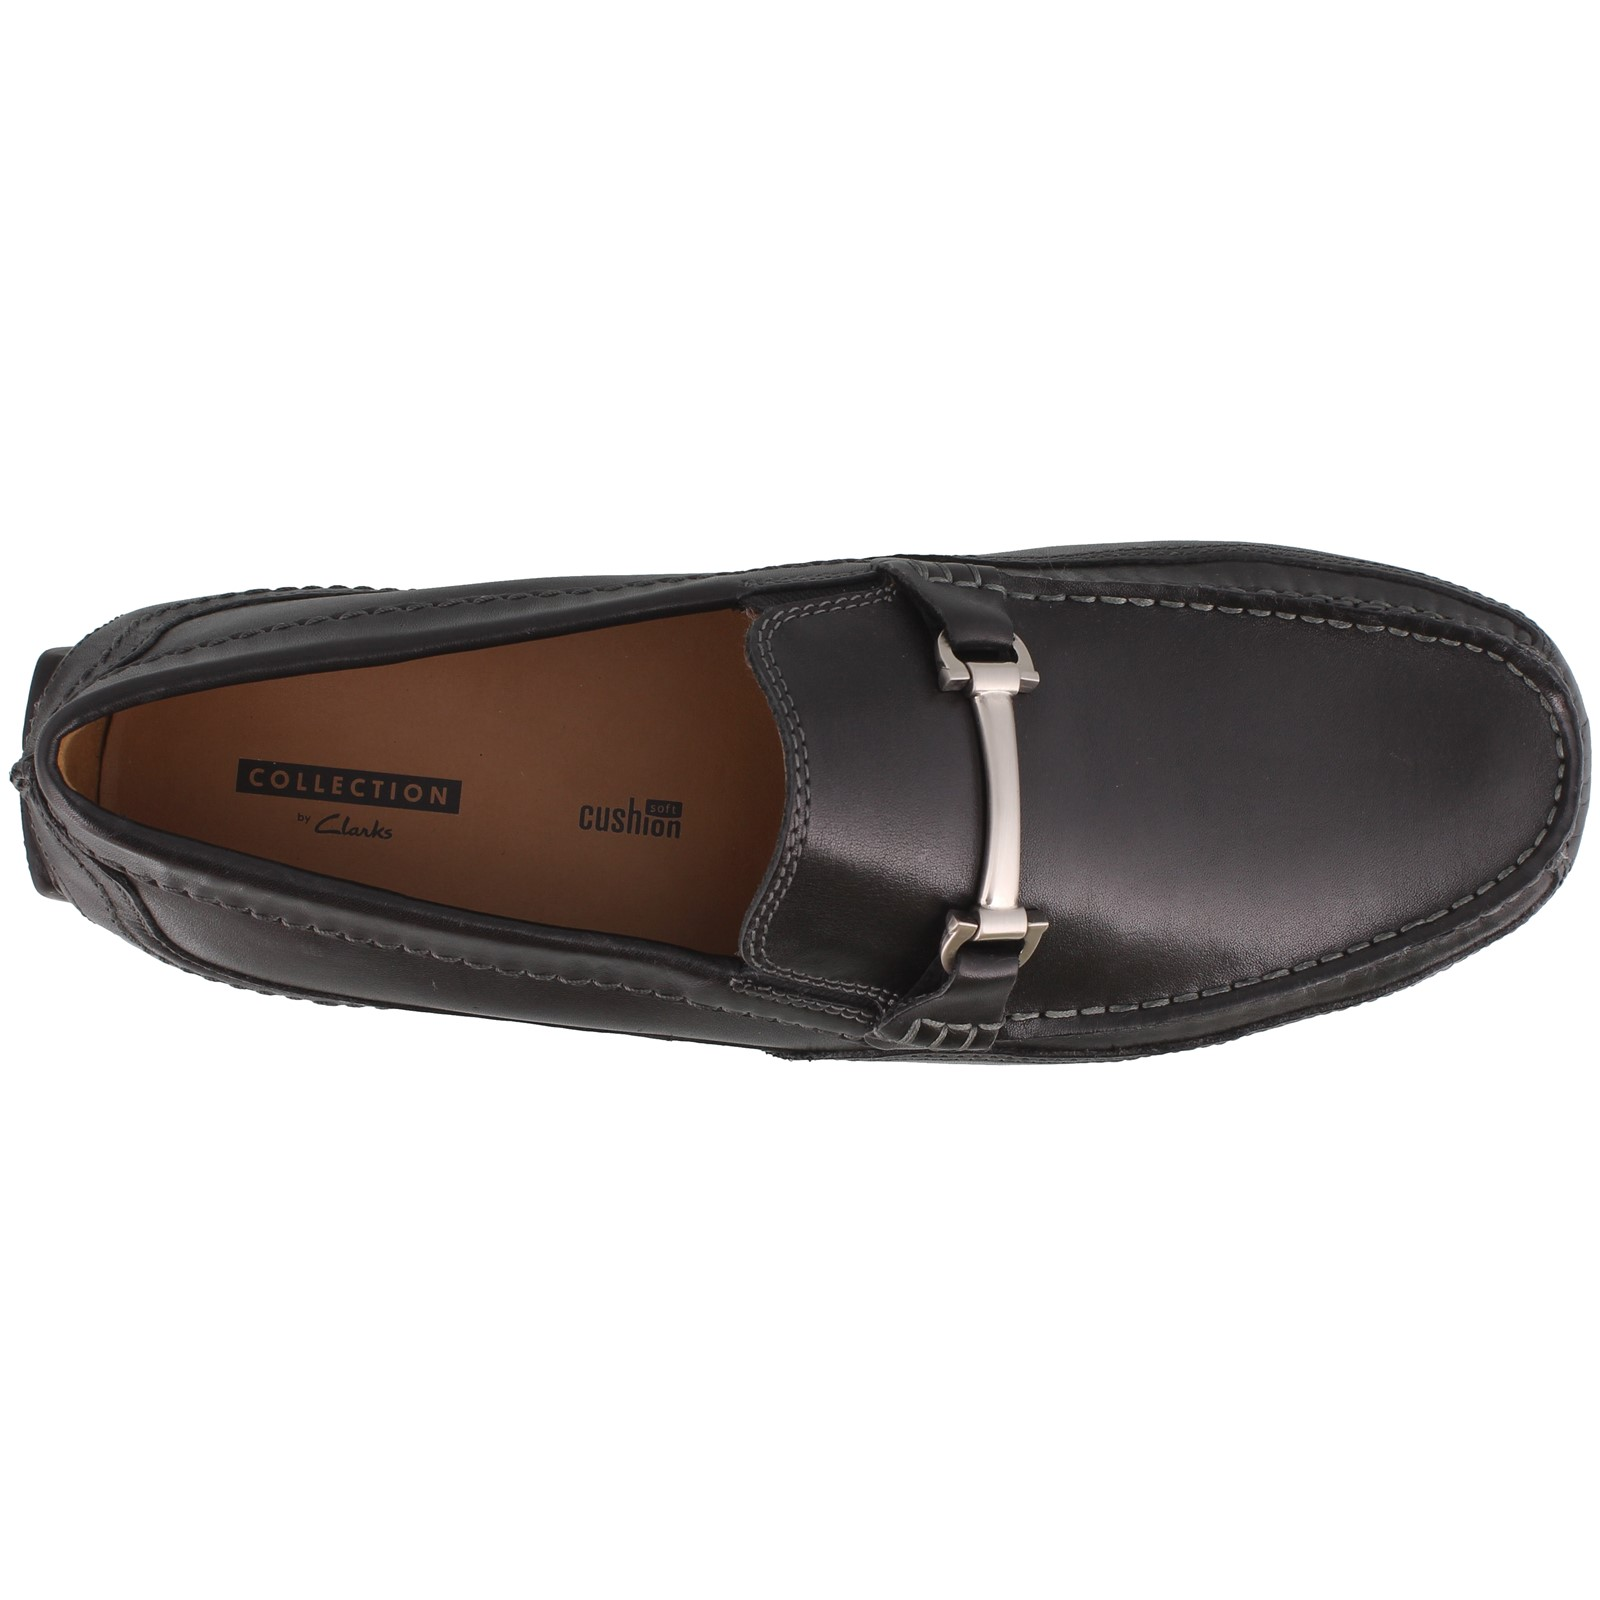 4653ae27b0 Home; Men's CLARKS, ASHMONT BRACE SLIP ON LOAFERS. Previous